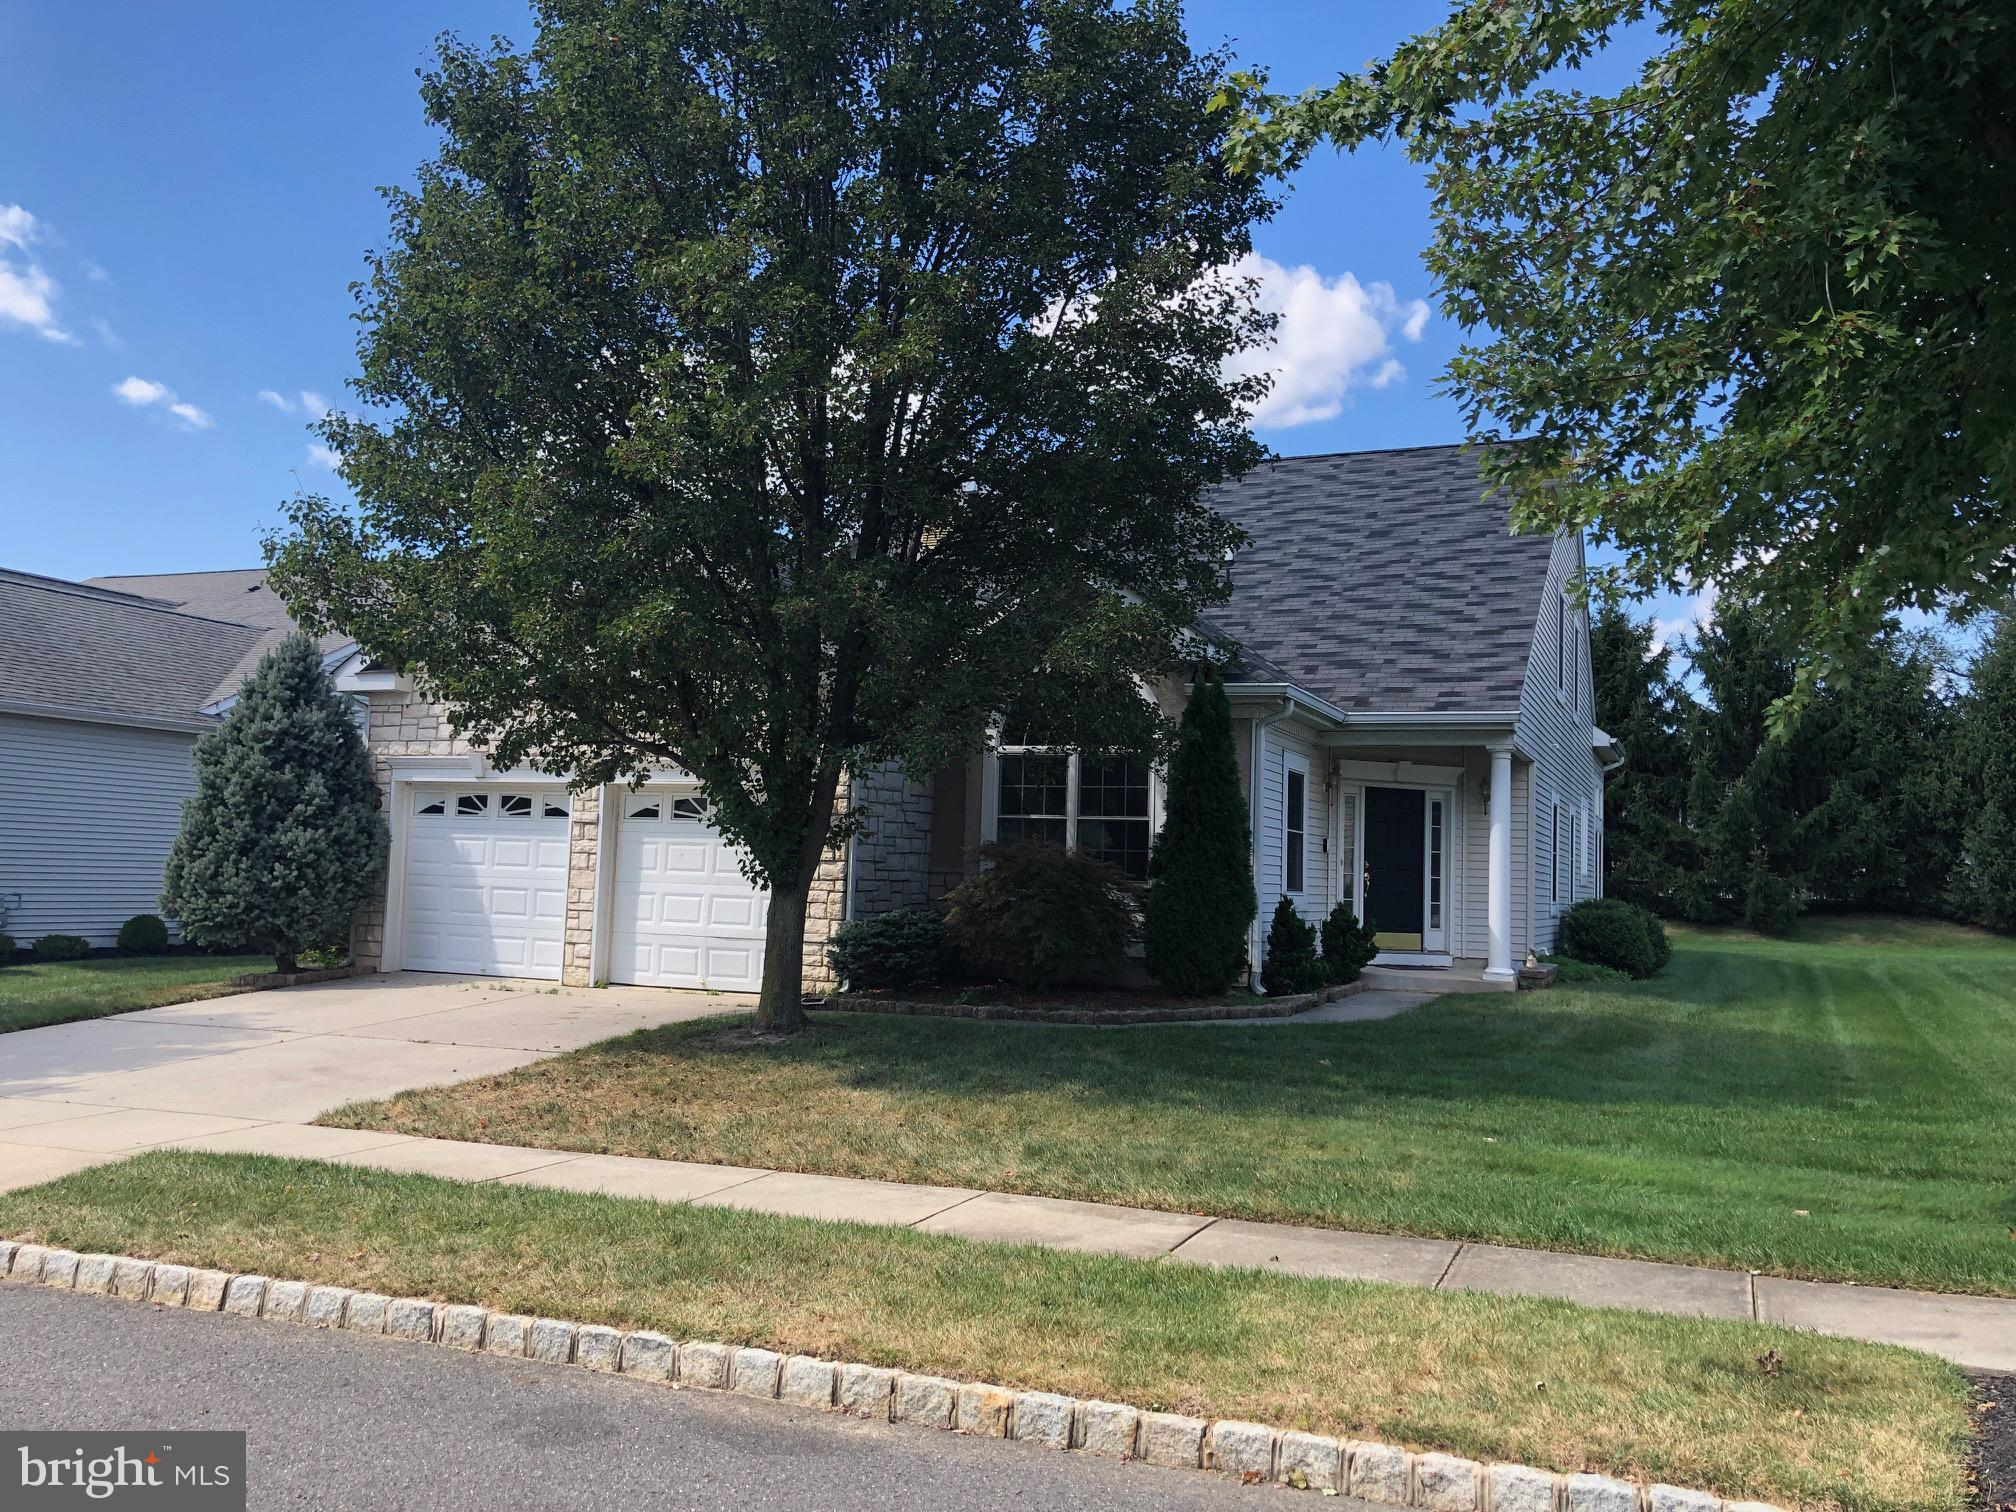 59 RIDGWAY DRIVE, BORDENTOWN, NJ 08505